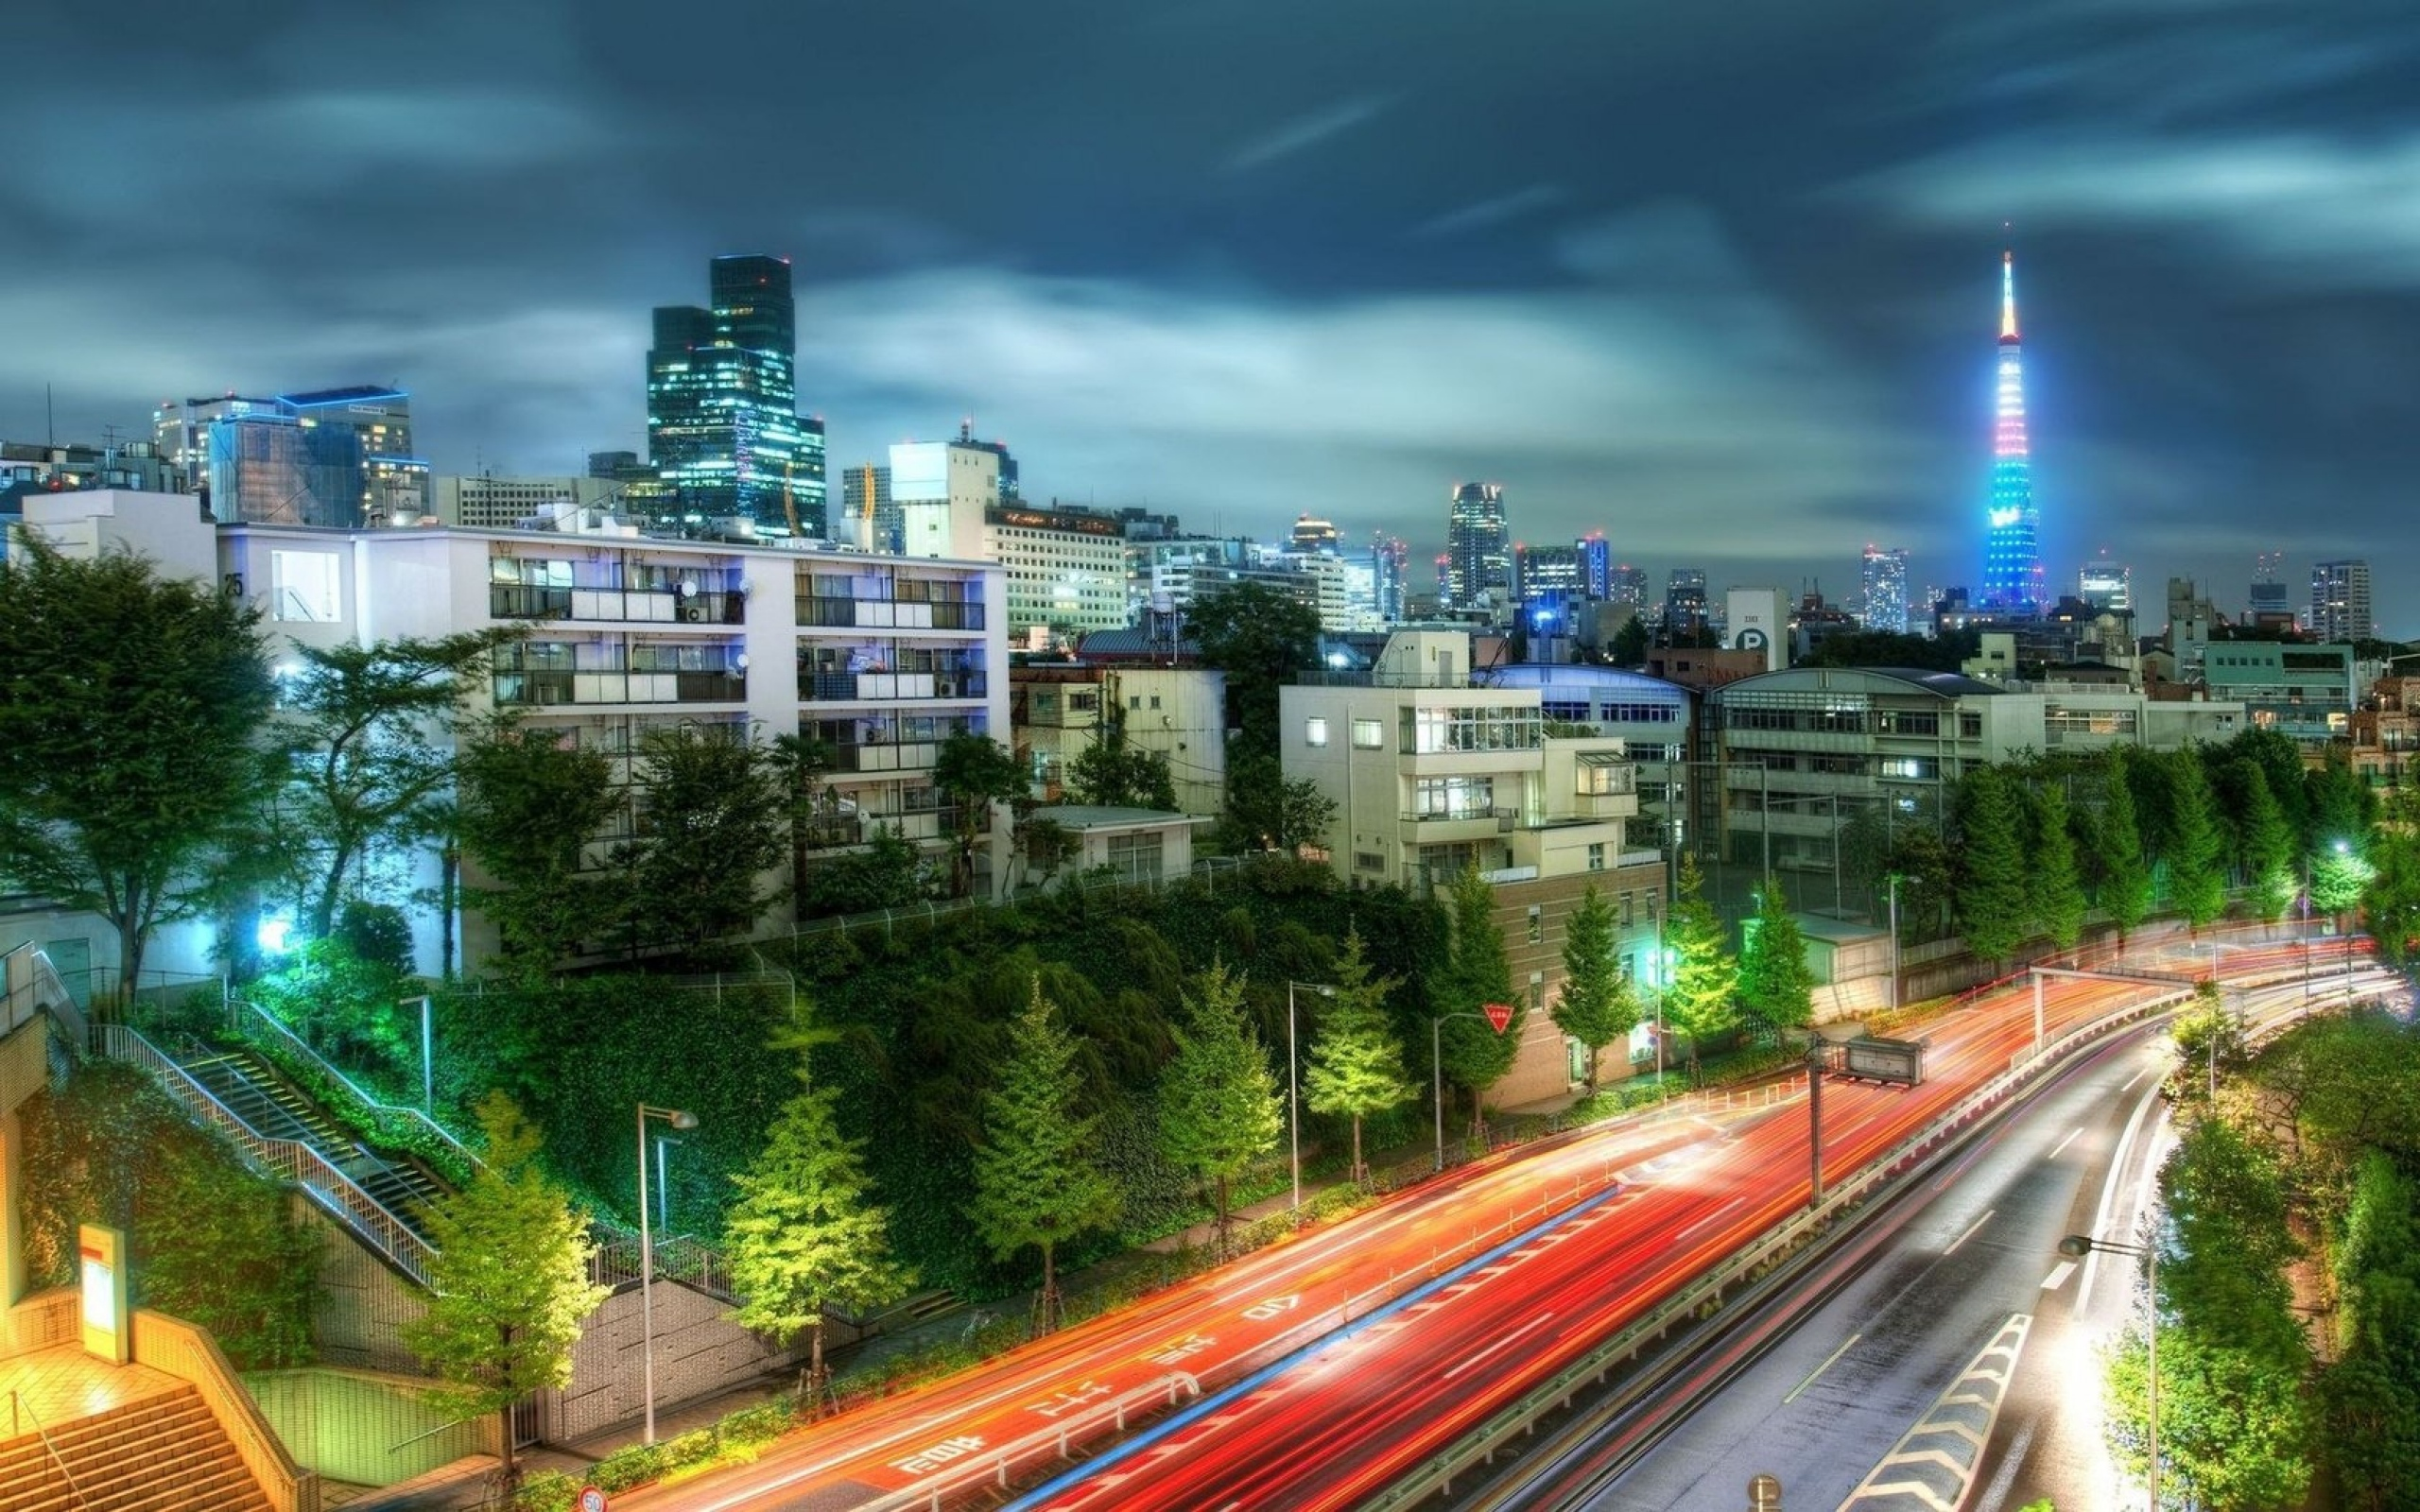 Photography - HDR  - Road - City - Tokyo - Japan - Building - Buildings - Trees Wallpaper